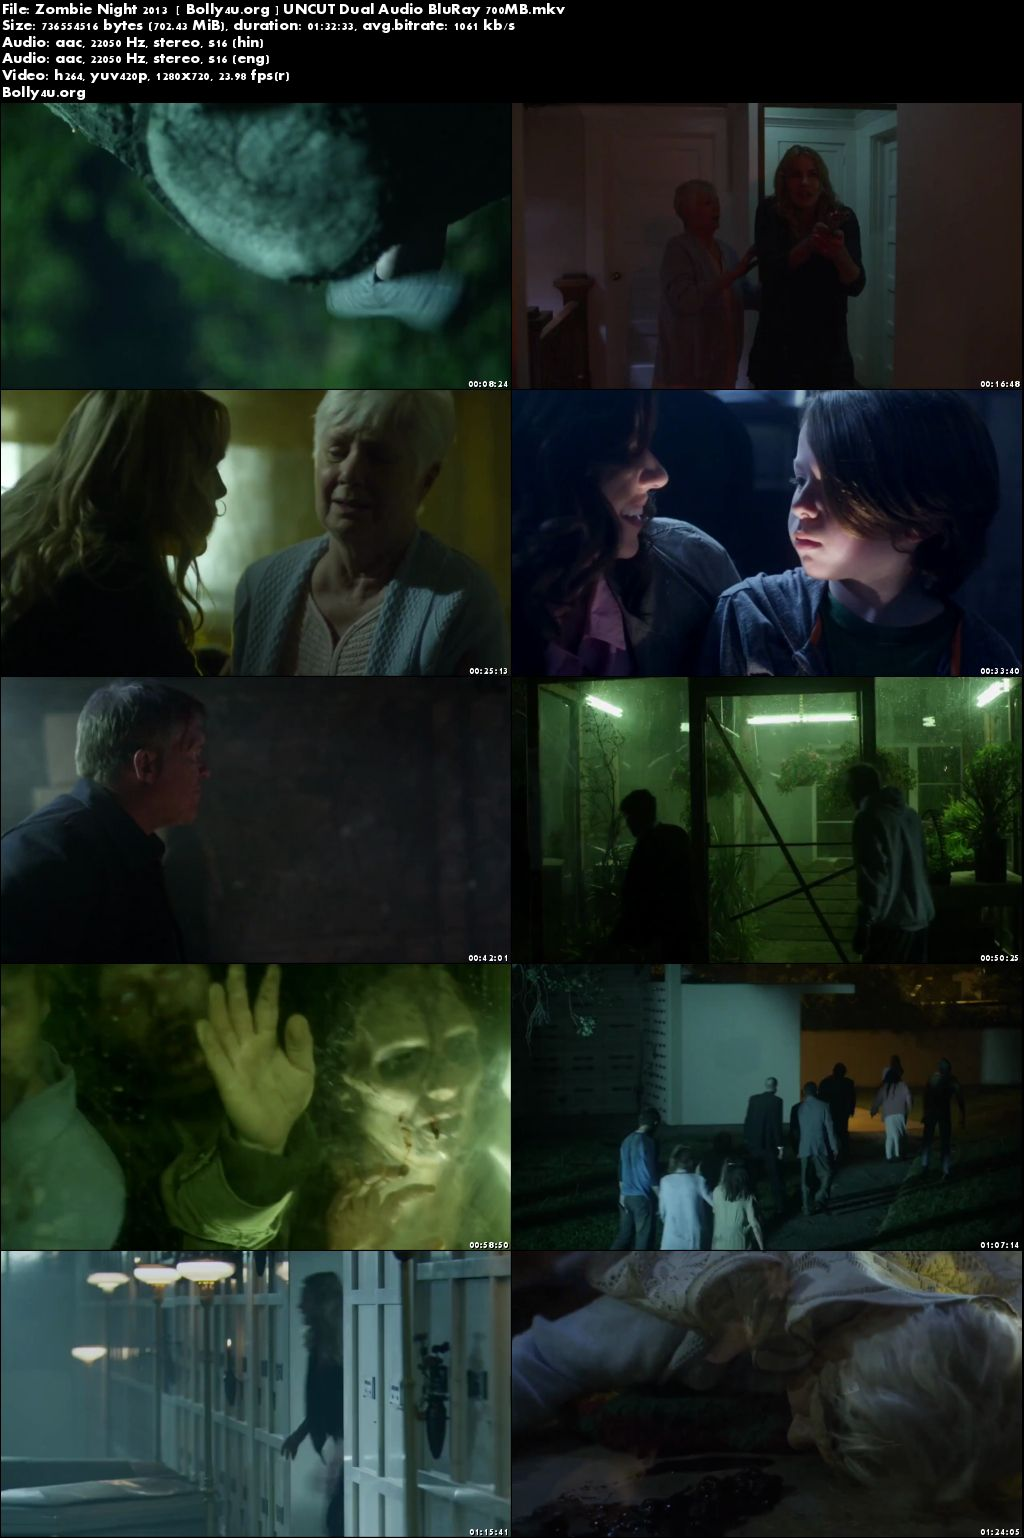 Zombie Night 2013 BRRip 700MB Hindi Dubbed UNCUT Dual Audio 720p Download